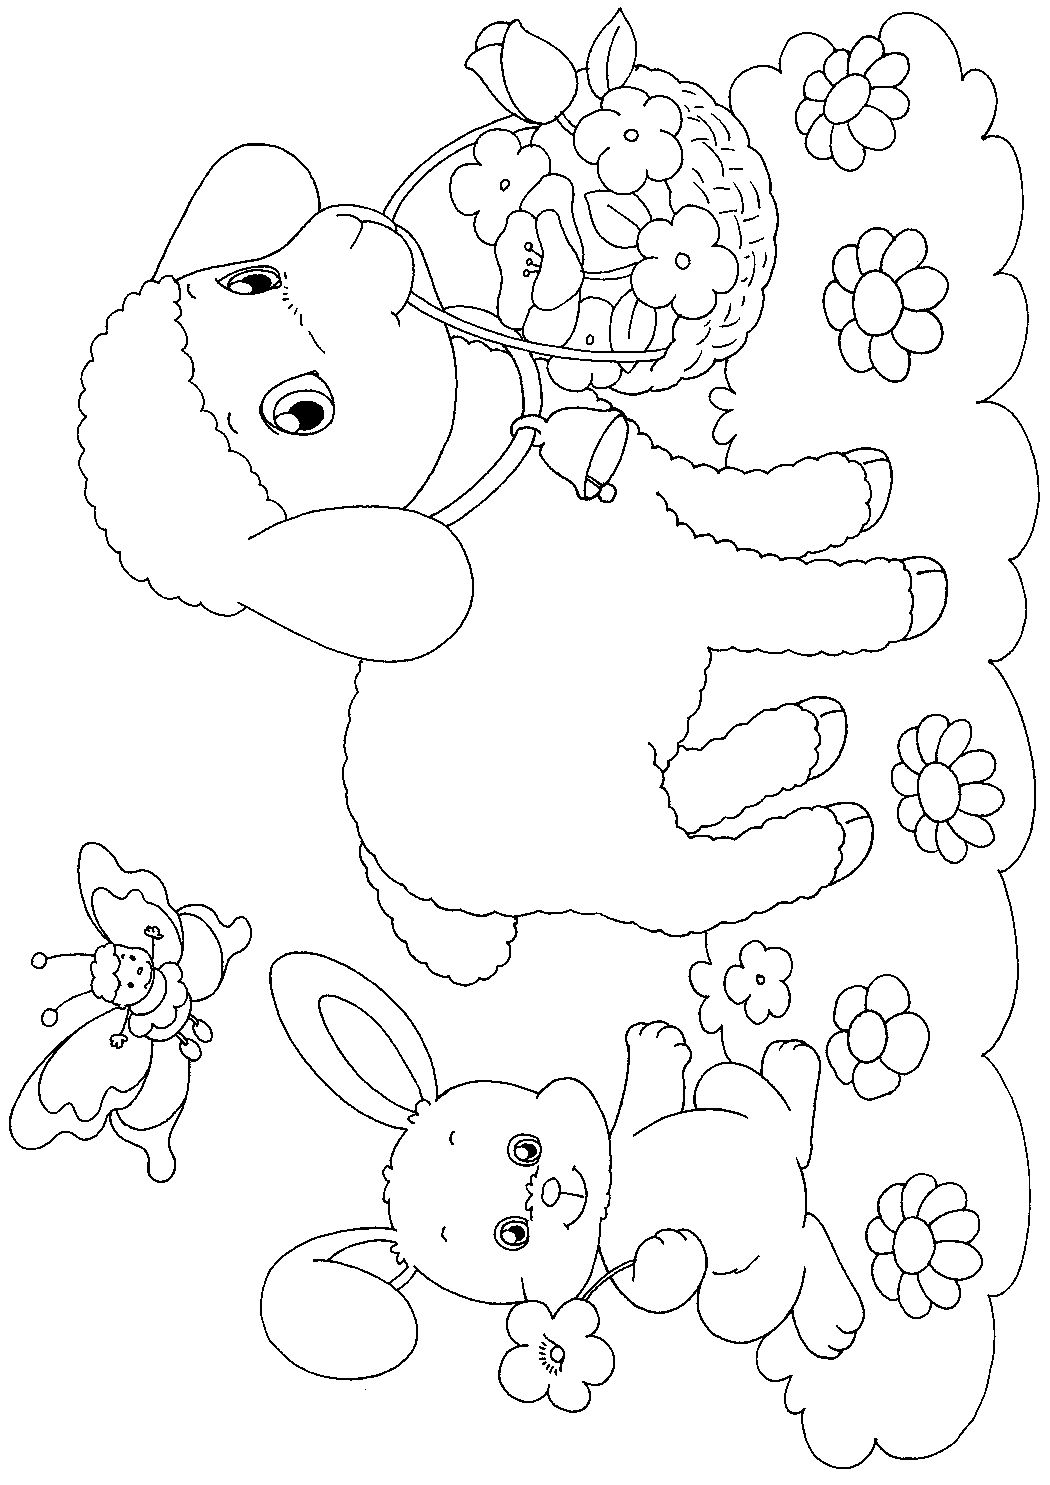 Easter Colouring Easter Paper Craft To Print And Colour Spring Coloring Pages Easter Coloring Pages Easter Coloring Sheets